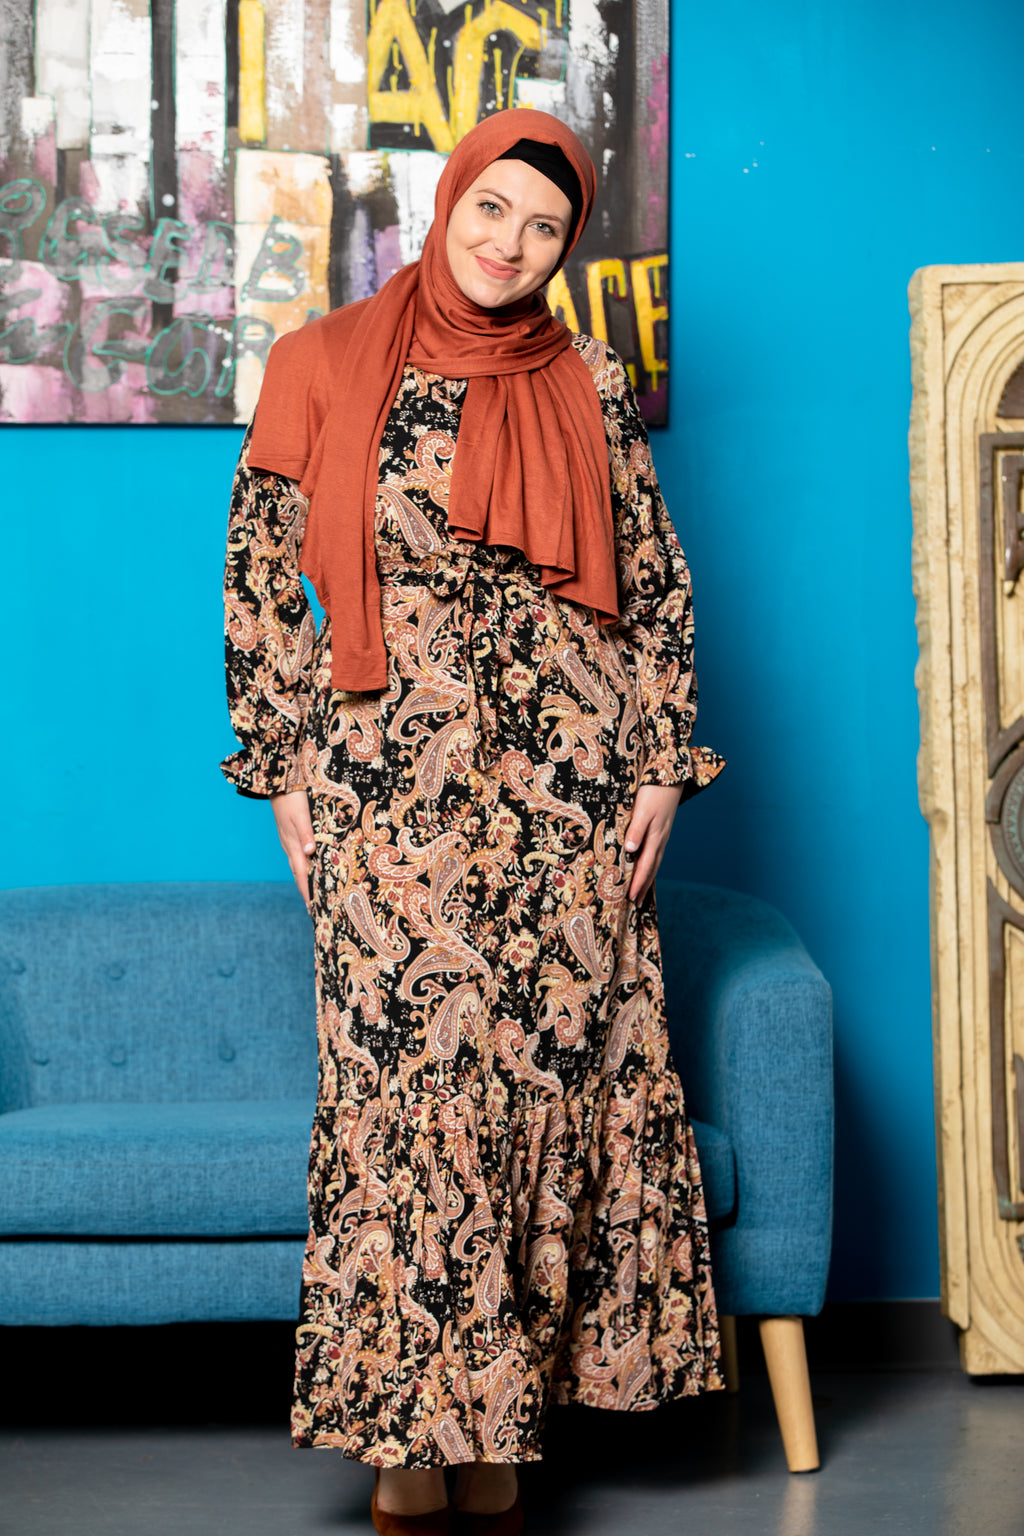 Cherry Blossom Floral Ruffle Long Sleeve Maxi Dress-Clearance - Abaya, Hijabs, Jilbabs, on sale now at UrbanModesty.com